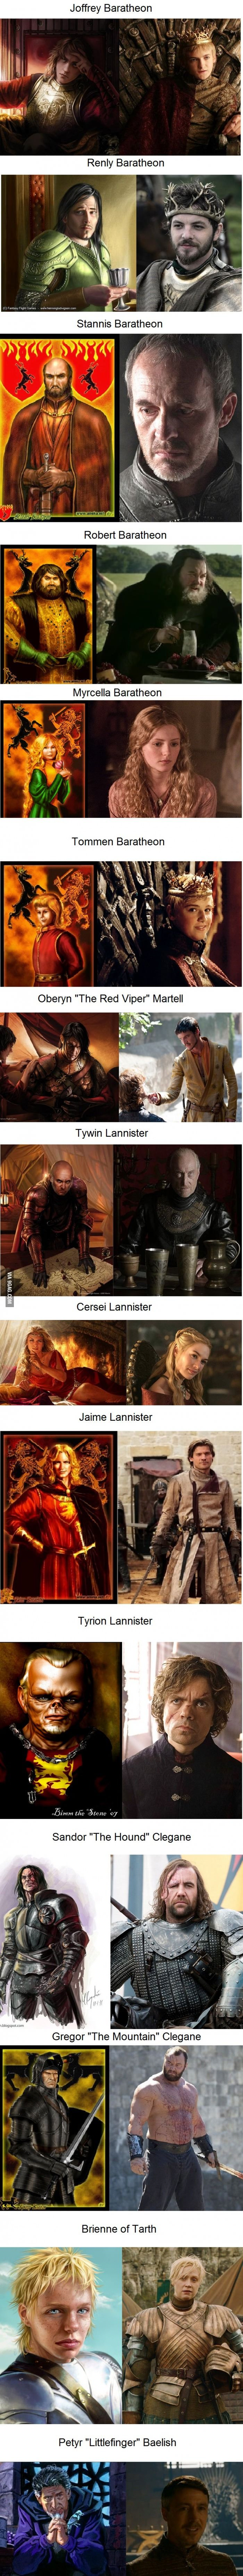 Game of Thrones Characters: In the Books vs. On The Show